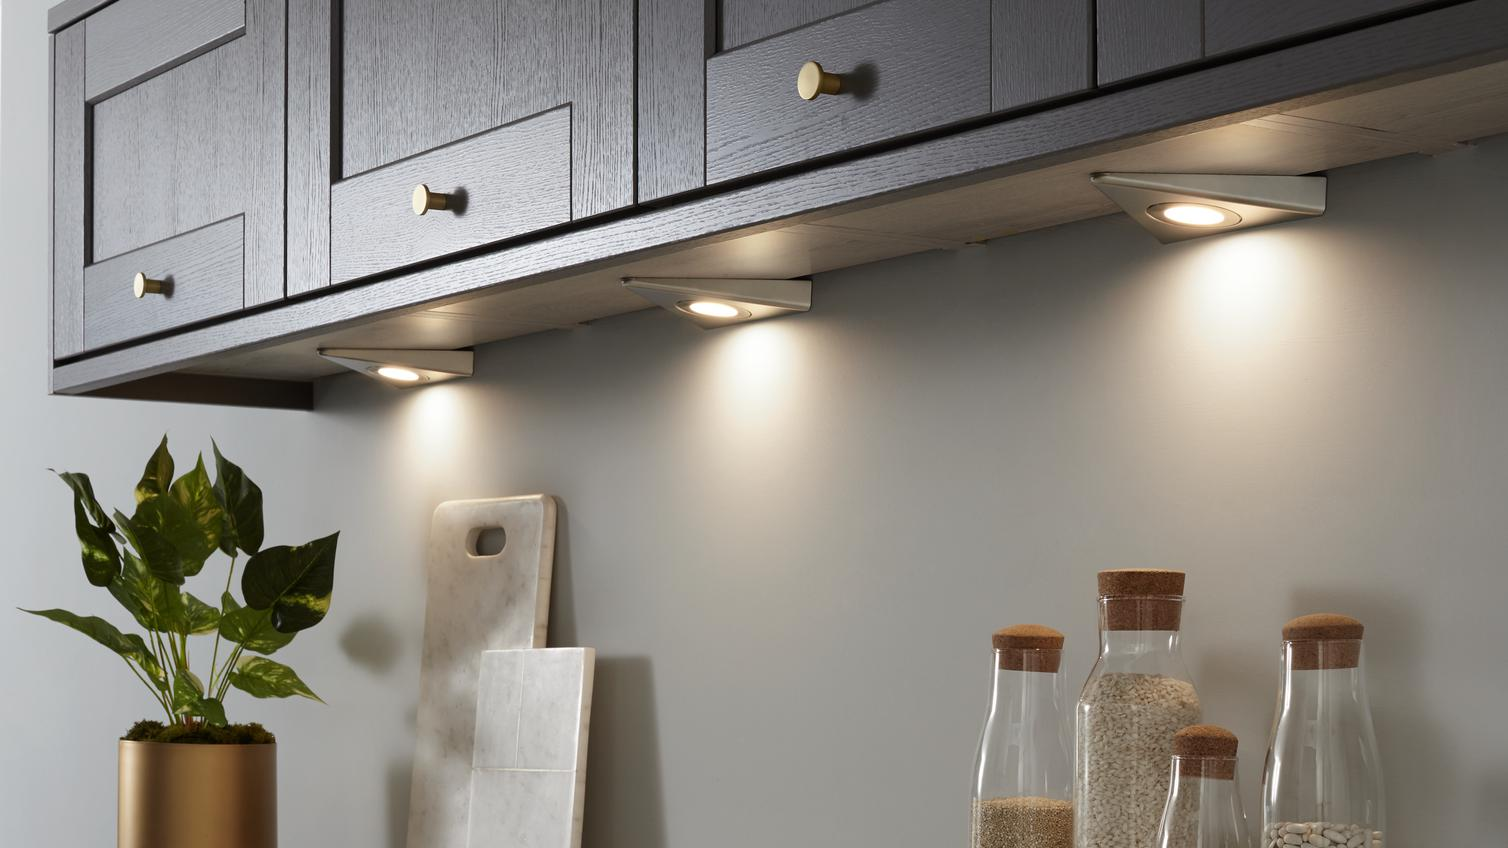 WHYARE CEILING LED PANEL LIGHTS THE BEST FOR BUSINESSES?